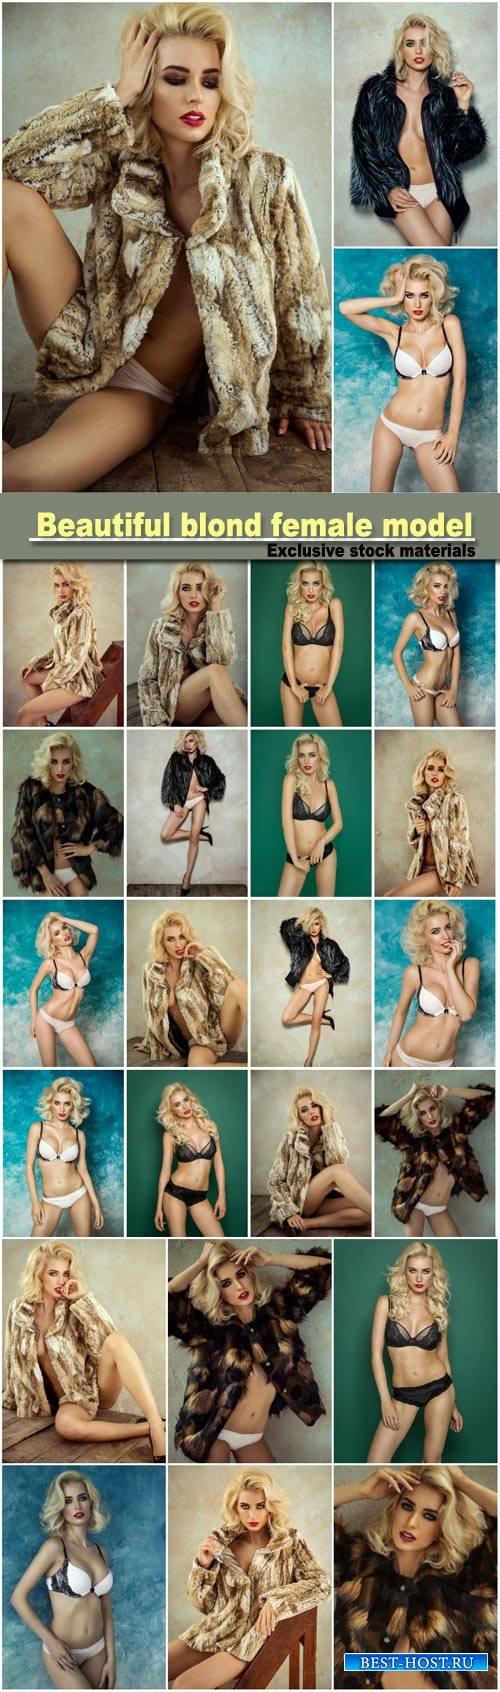 Beautiful blond female model wear fur, sexy female model posing in lingerie